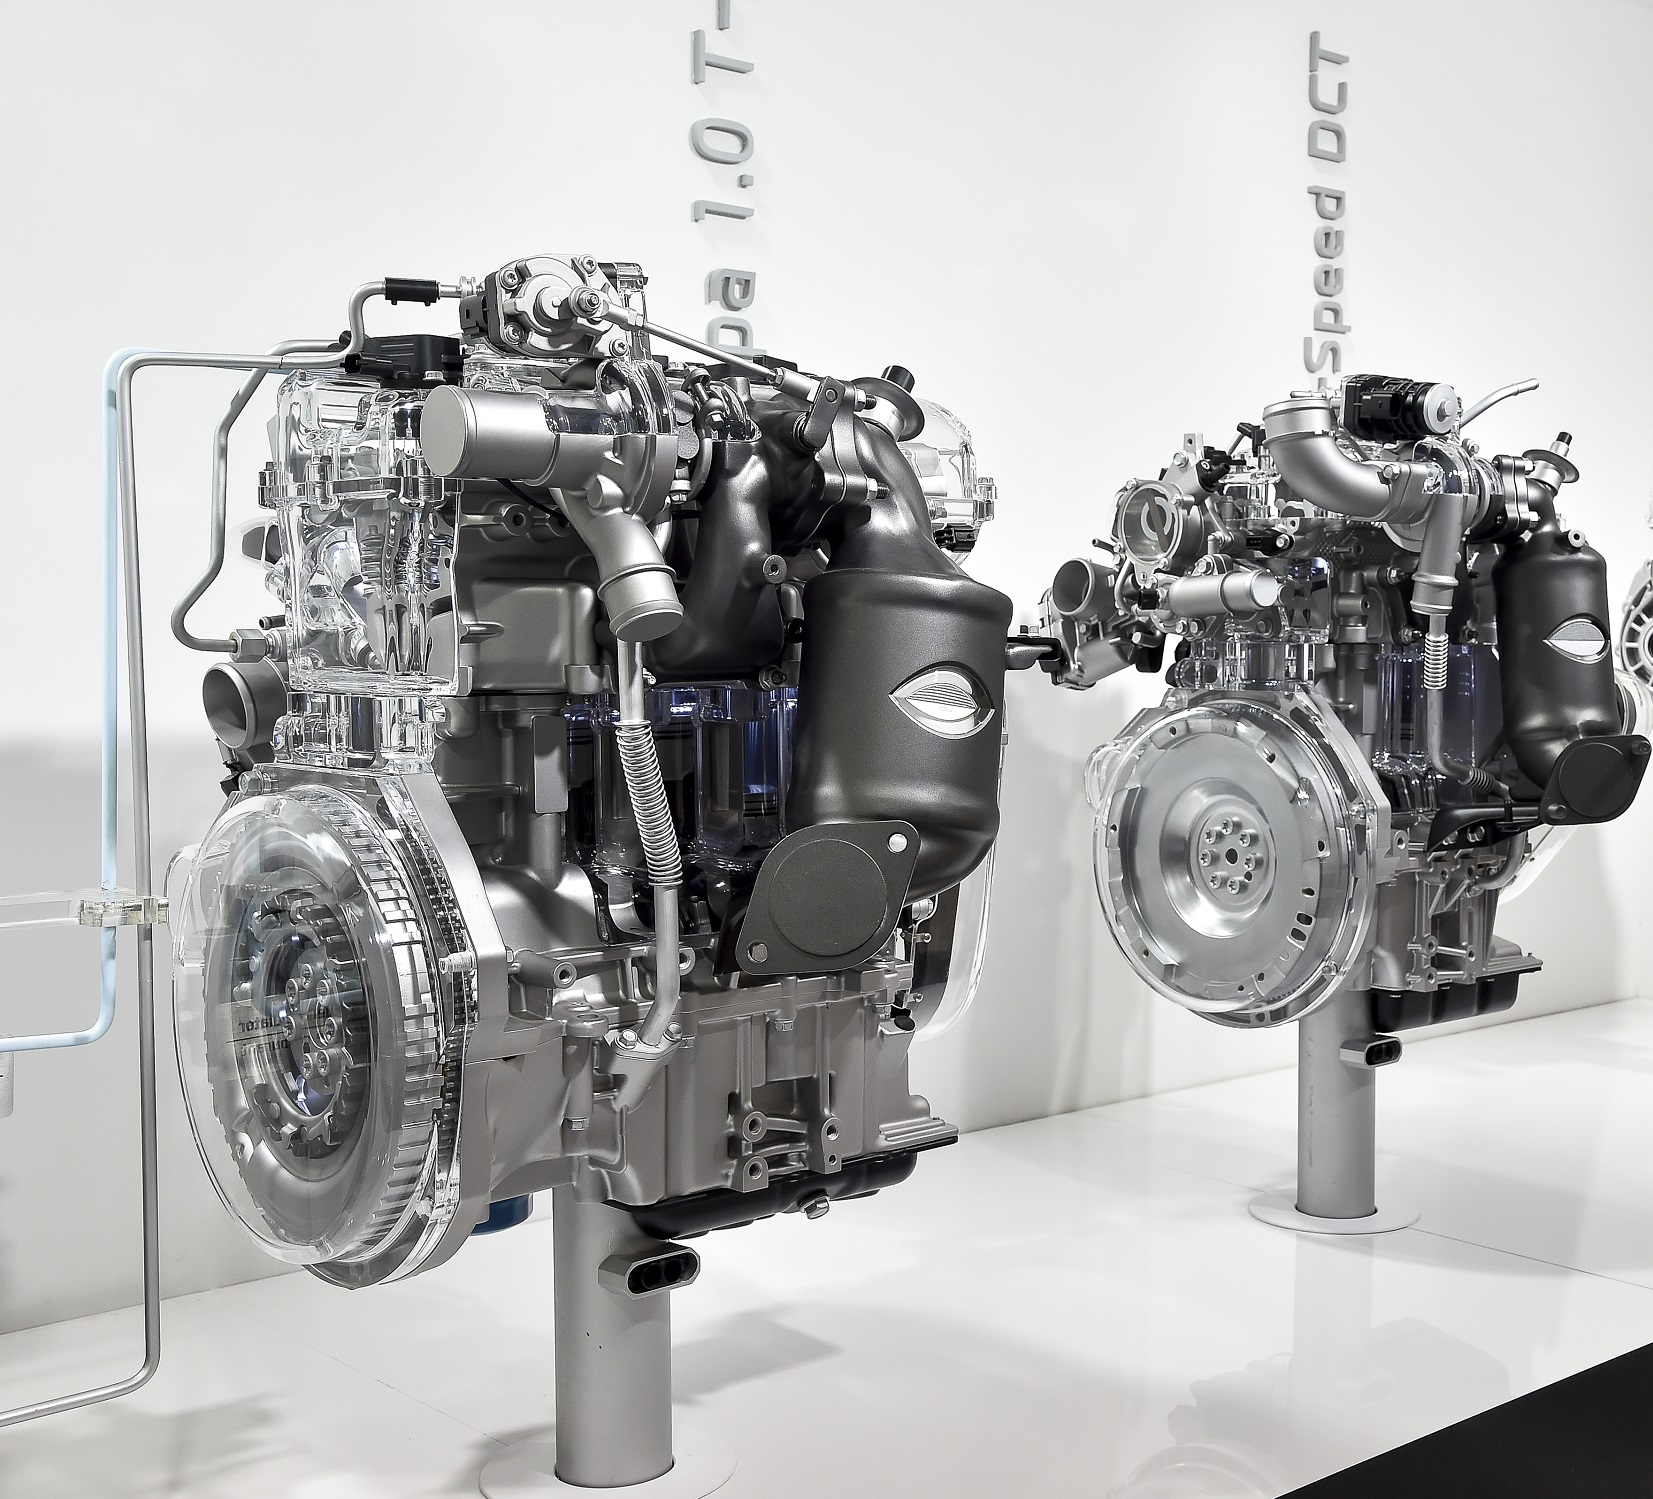 New Hyundai gasoline engine family